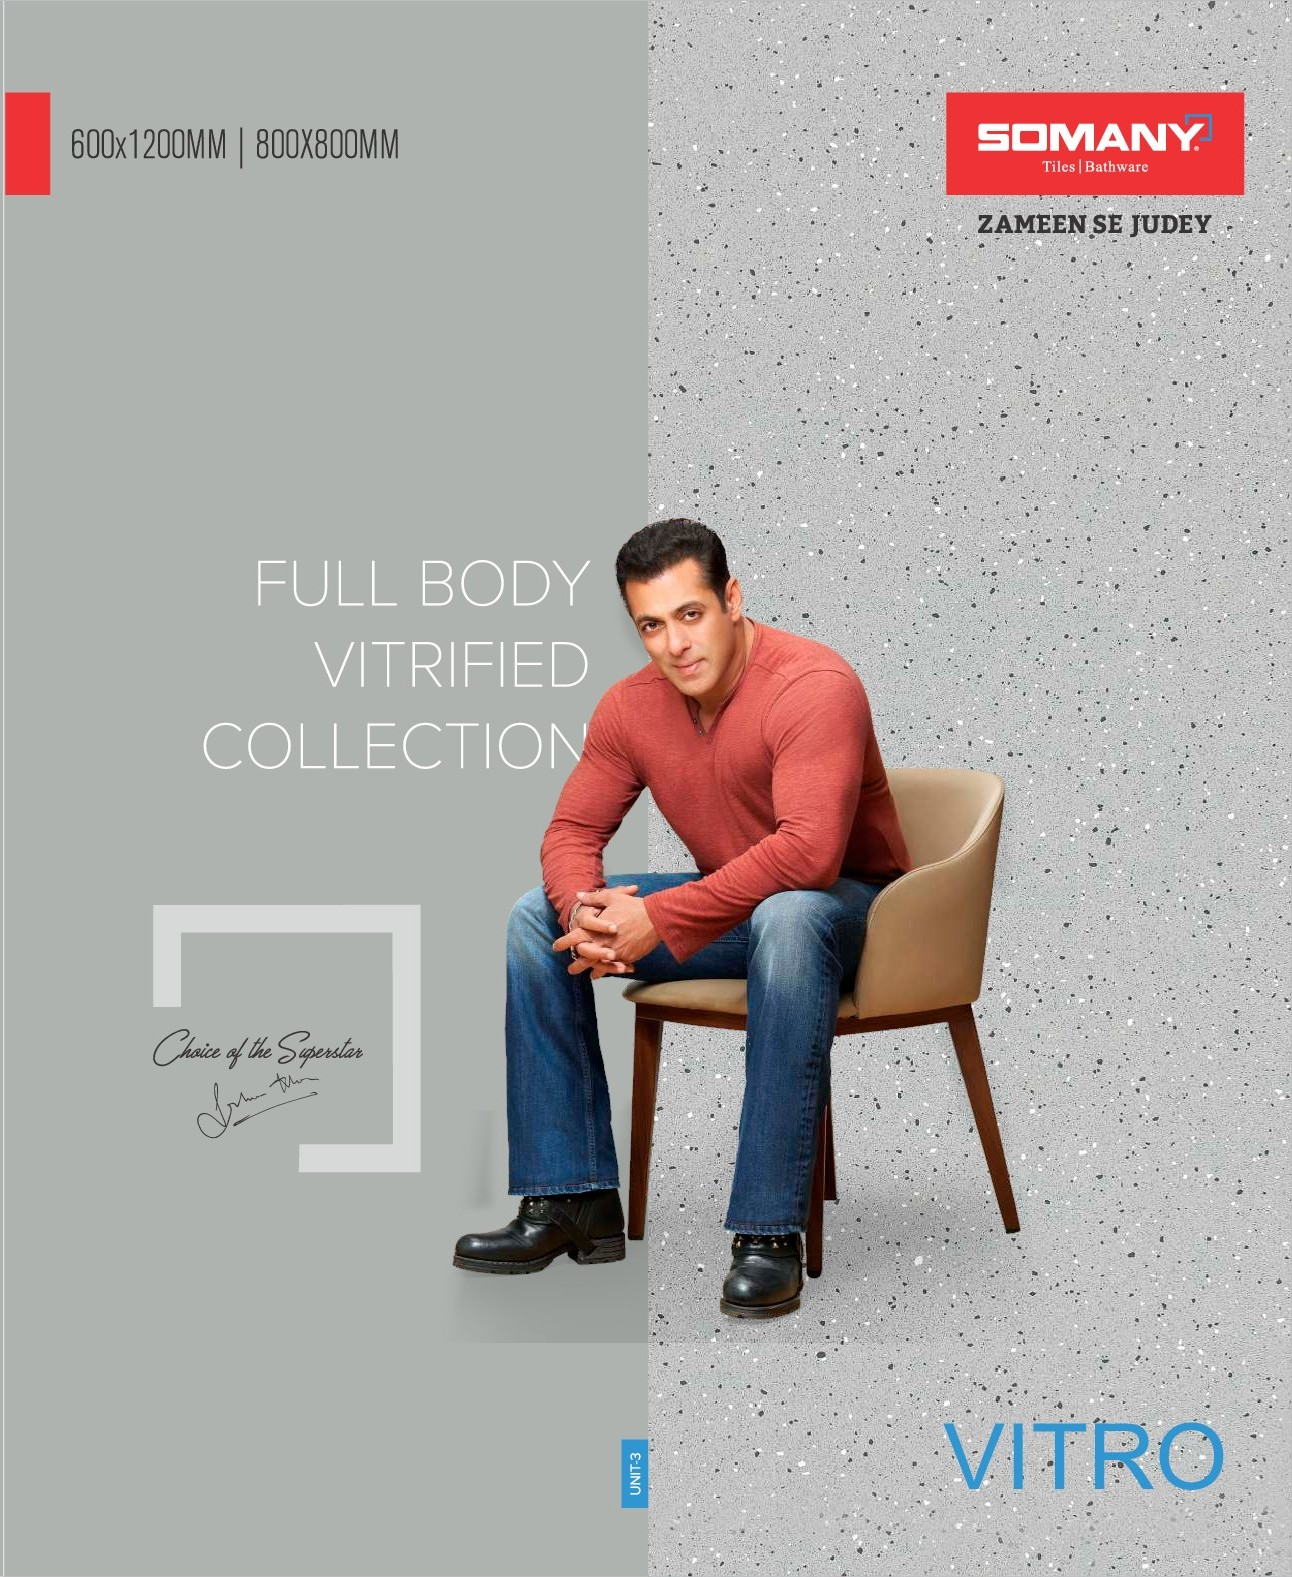 Somany Products Catalogue